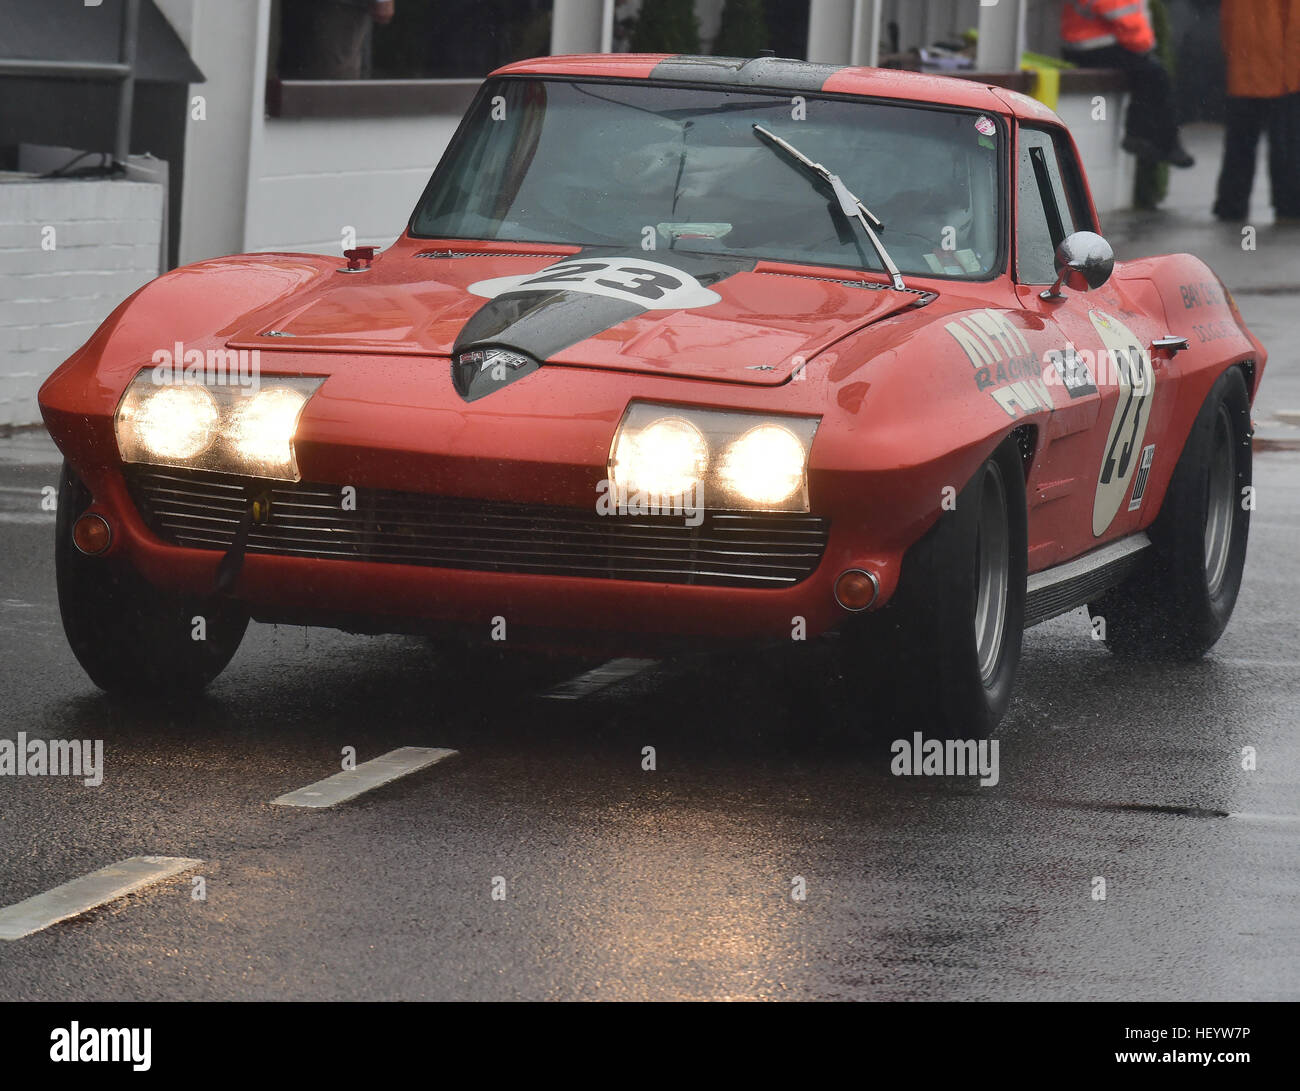 Royal Chevrolet Used Cars: Corvette Classic Gt Car Racing Stock Photos & Corvette